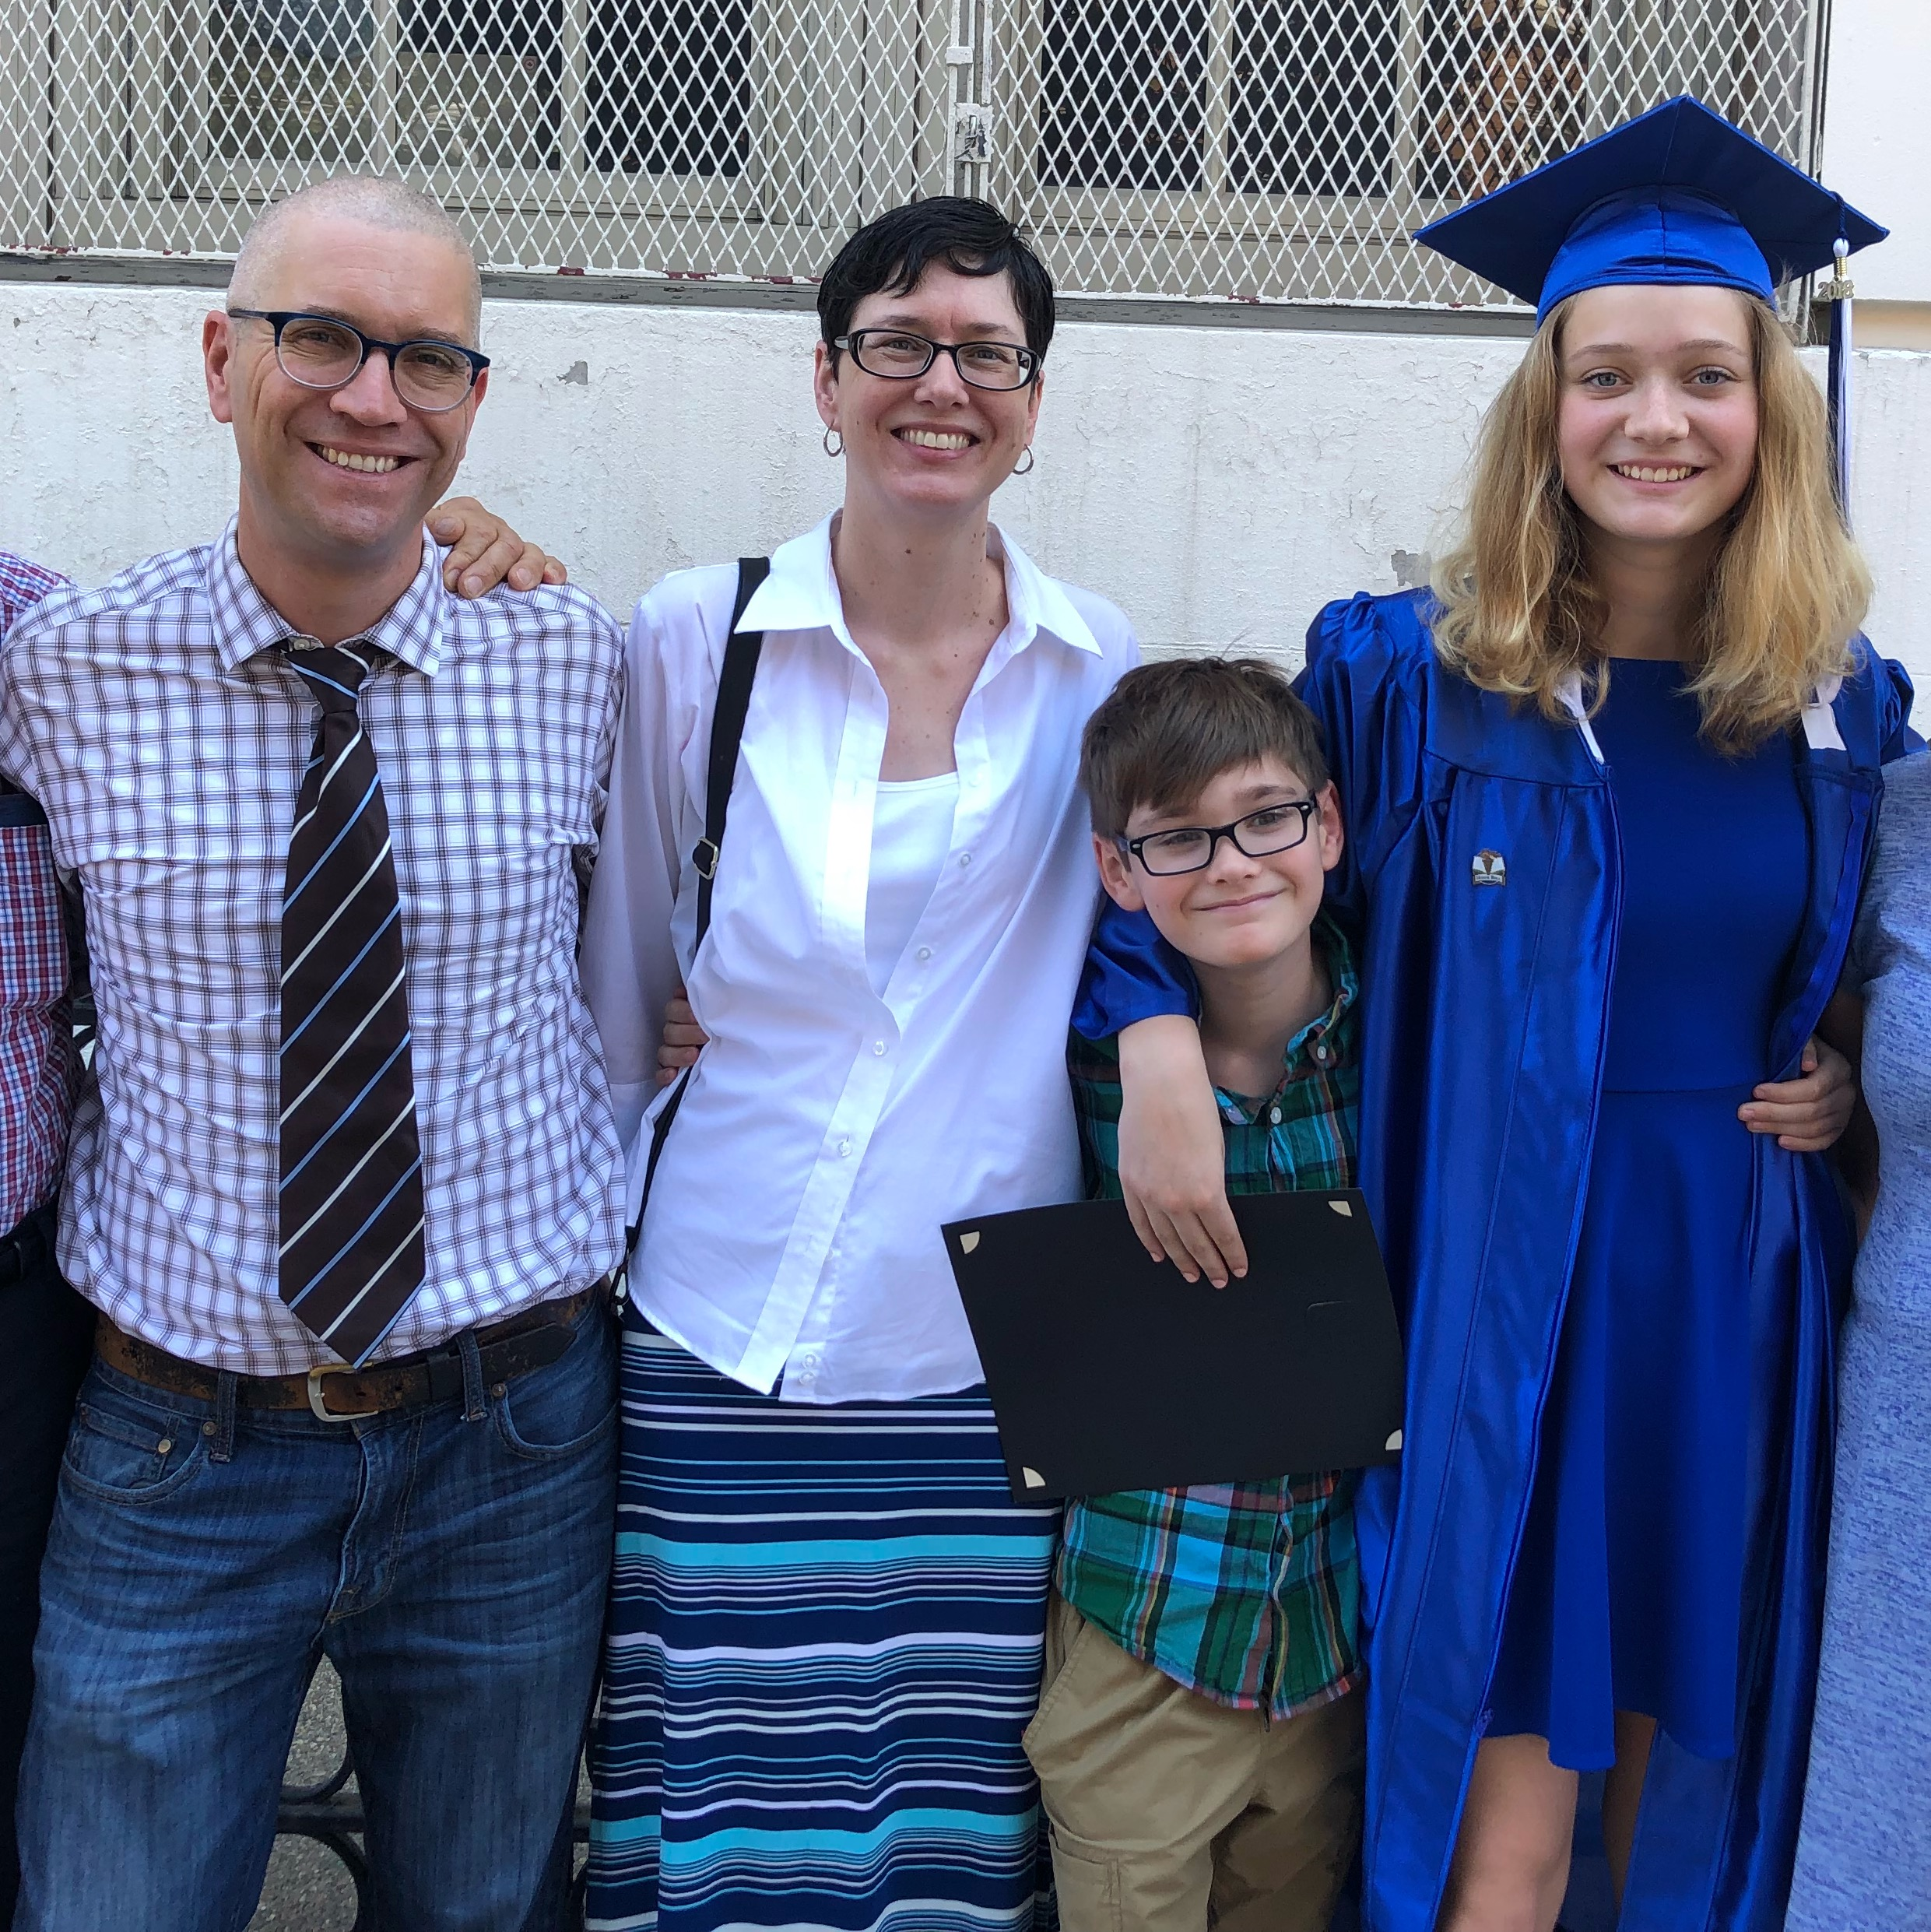 Neil Carlson, Erin Carney and Kids